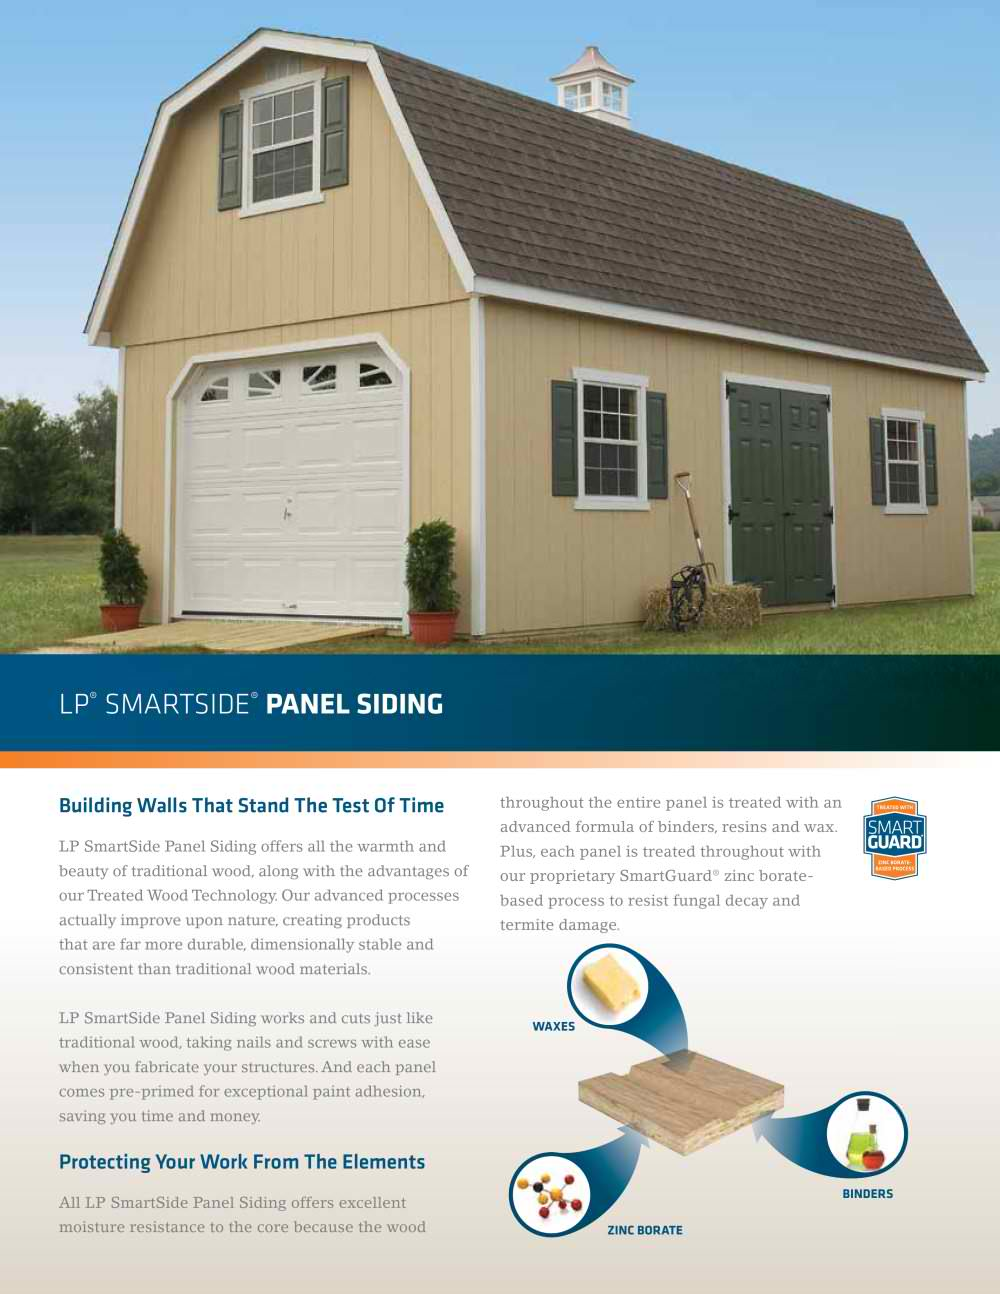 Lp smartside colors great diamond kote catalog with lp for Lp smartside prefinished siding reviews